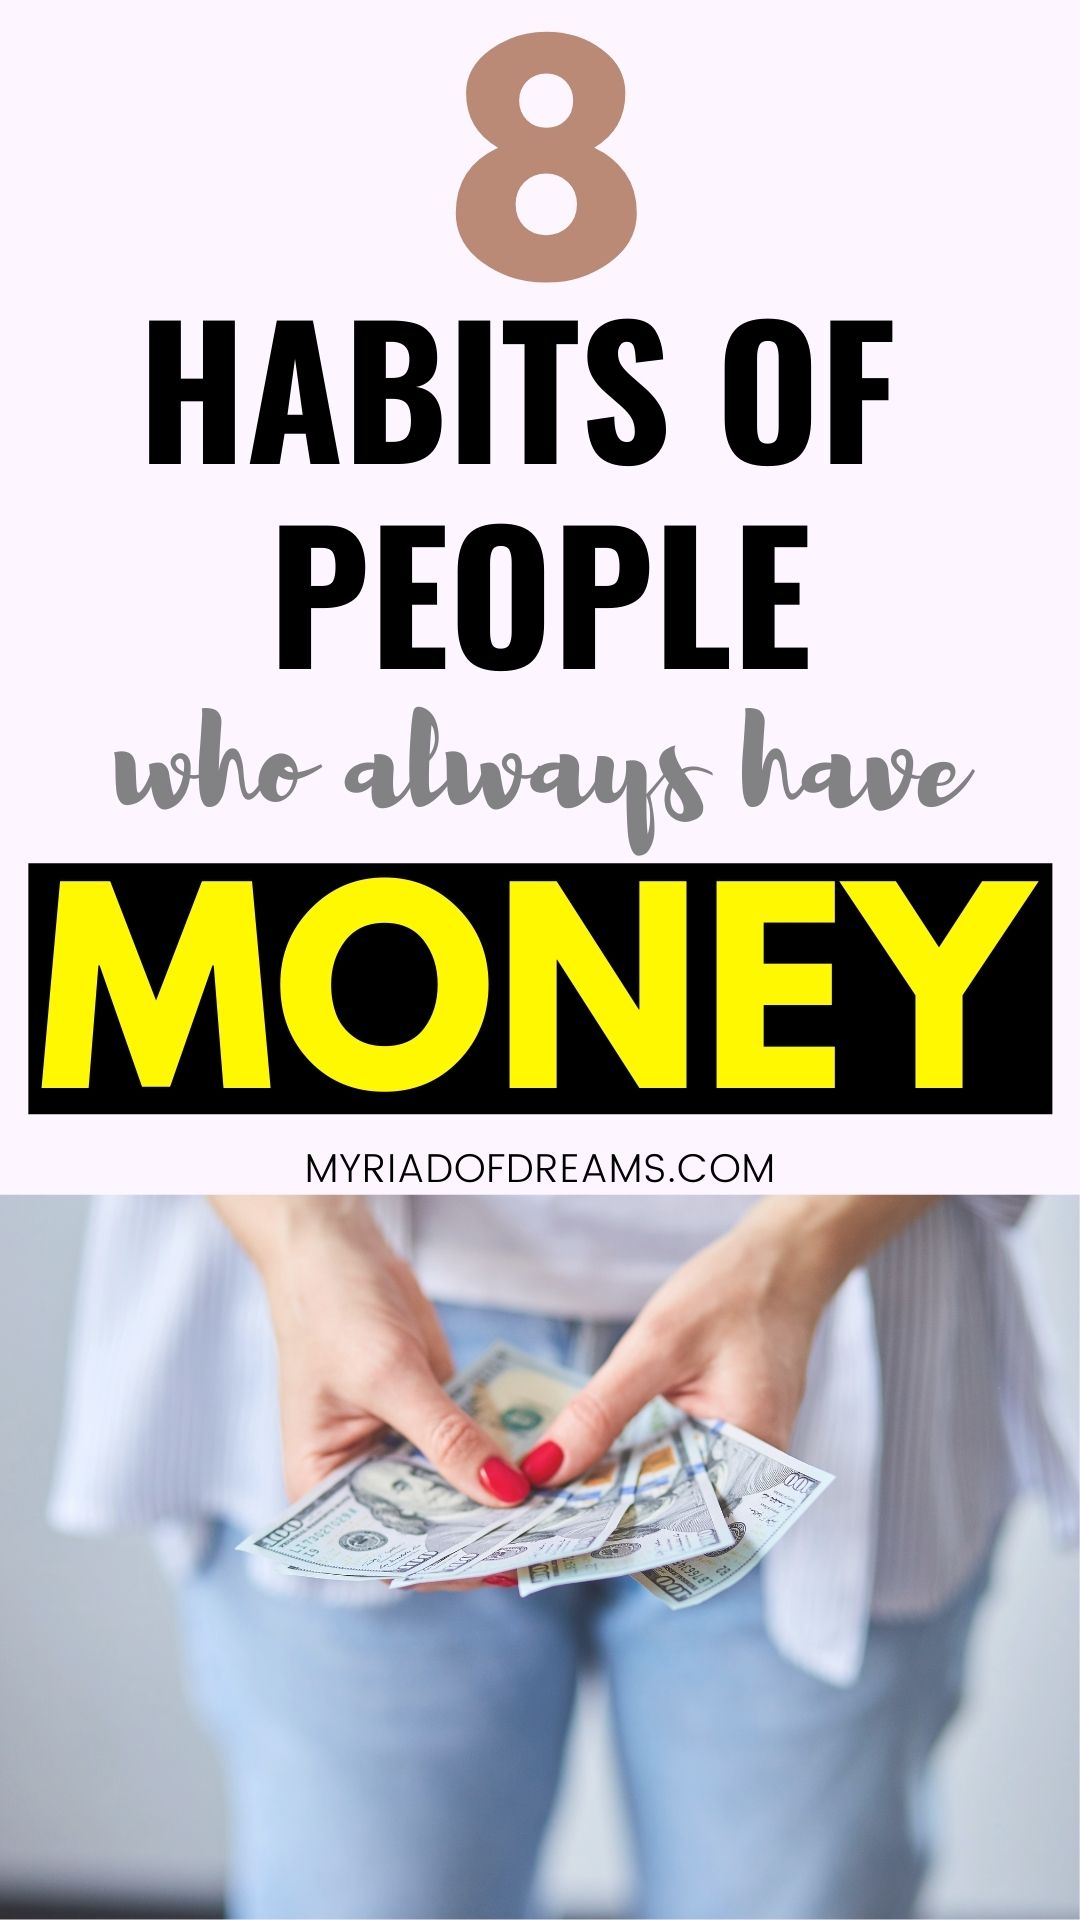 Tired of being broke and want to know the secret habits of people who always have money? Here are 8 financial habits of rich people that help them create wealth. Personal finance tips you wish you knew sooner. Habits of successful women. Rich mindset, money mindset, money saving tips, how to save money and how to get rich. Get out of debt and save for retirement, budgeting ideas, stop being poor and save money, frugal living #frugaltips #moneymanagement #savemoney #richpeople